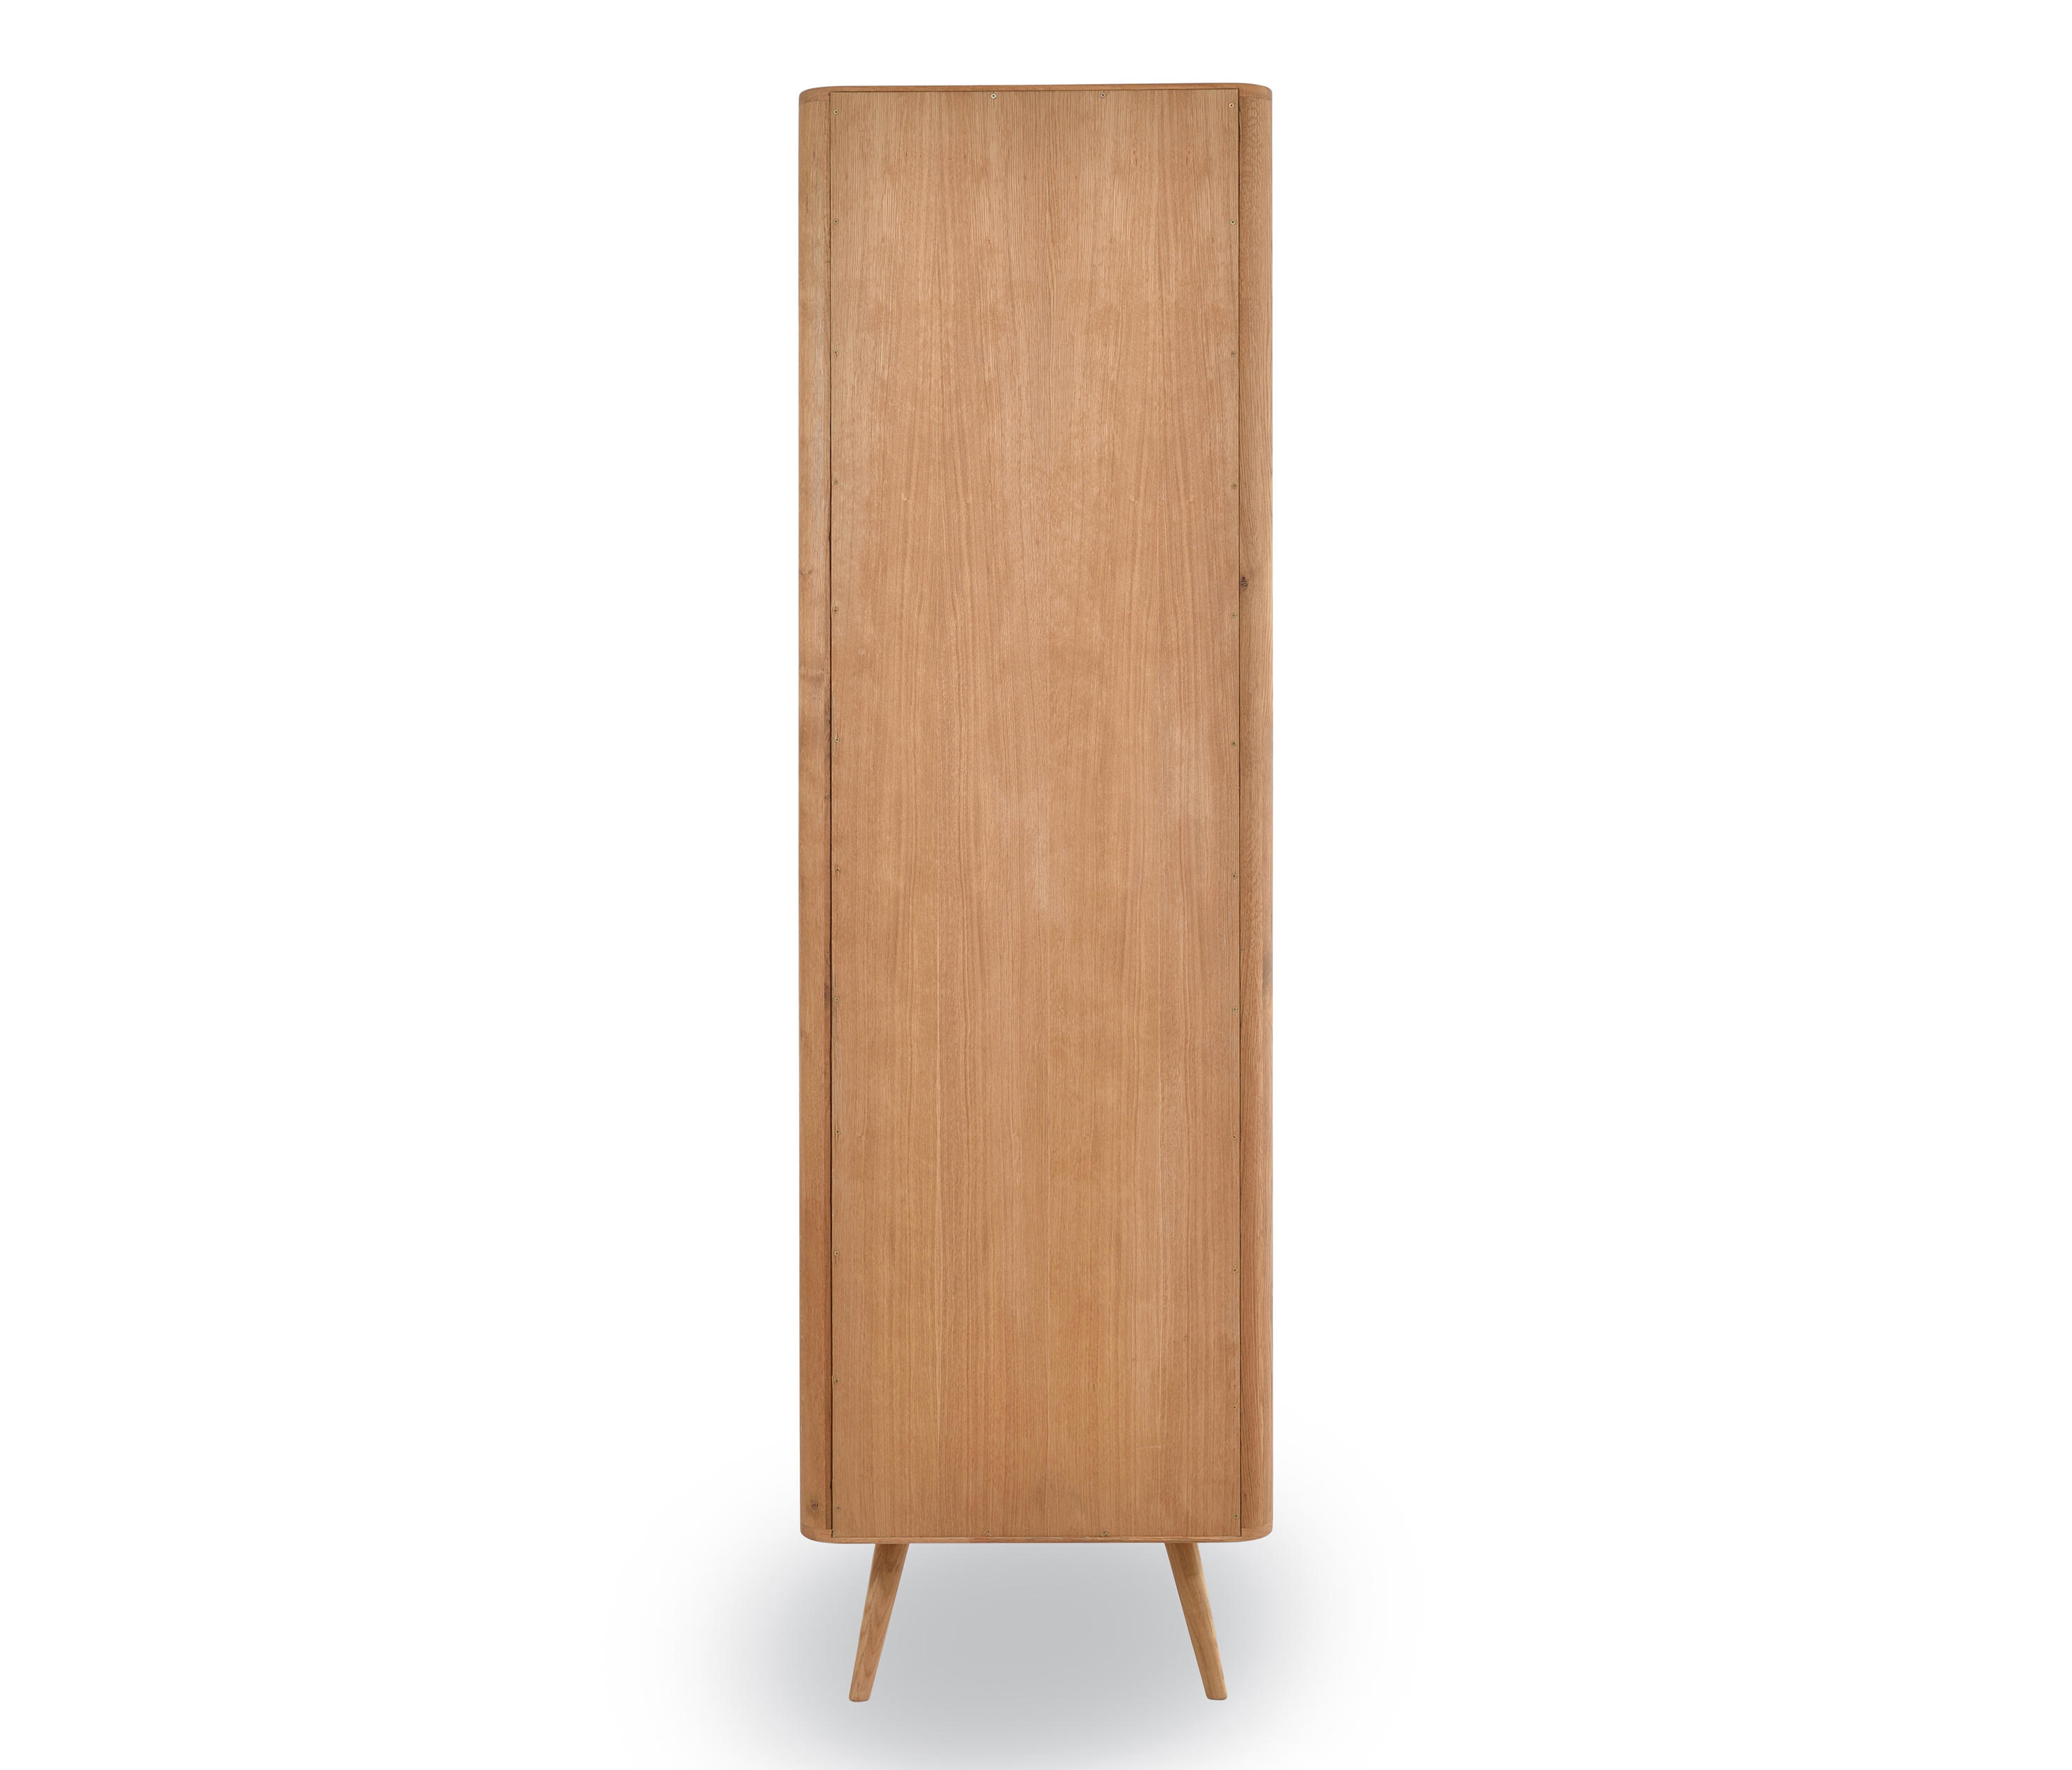 Small Office Cabinet Ena Office Cabinet   Cabinets From Gazzda | Architonic Part 7